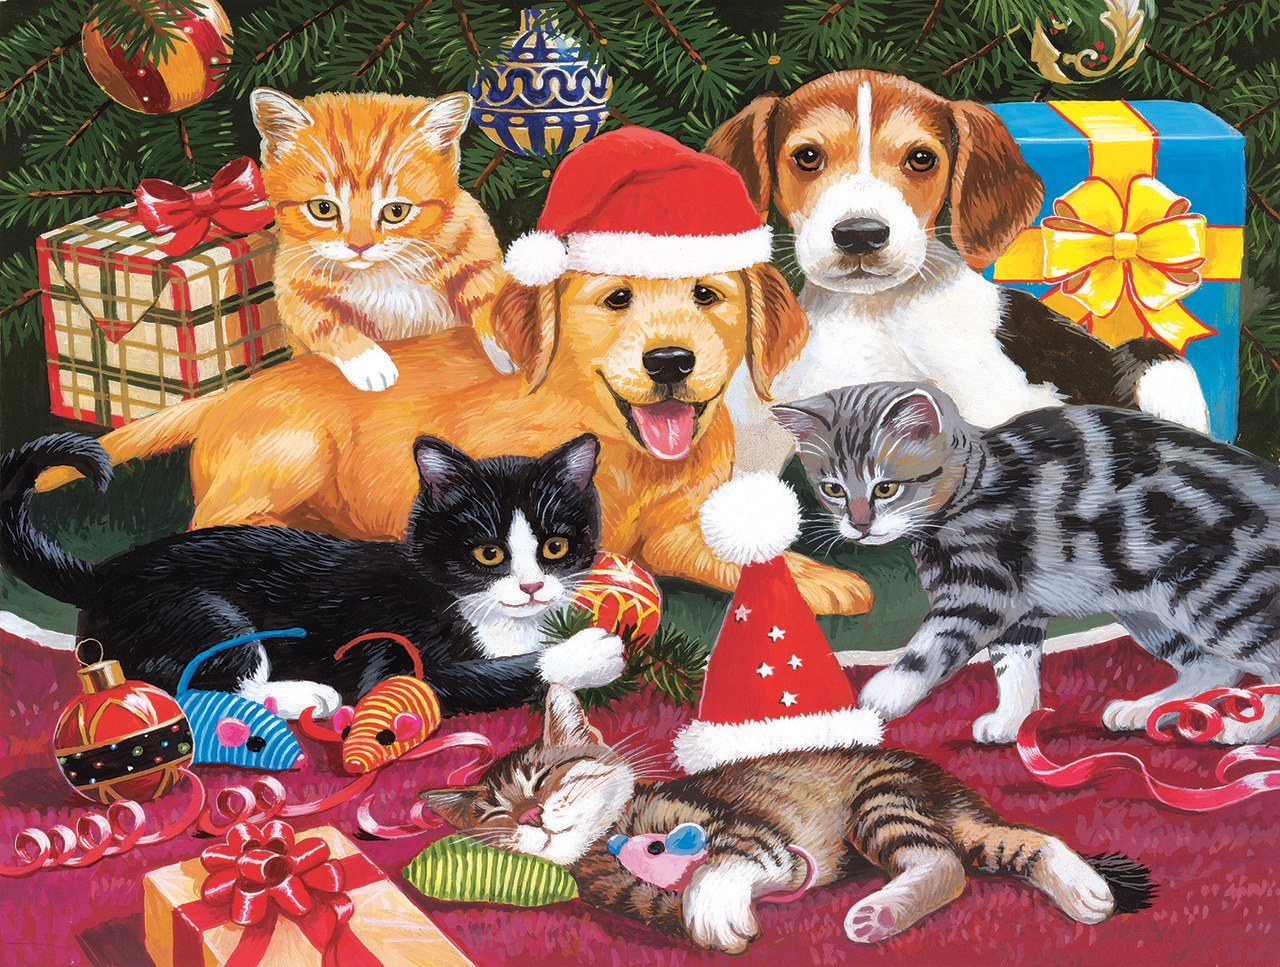 Christmas Meeting - 300pc Jigsaw Puzzle by Sunsout  			  					NEW